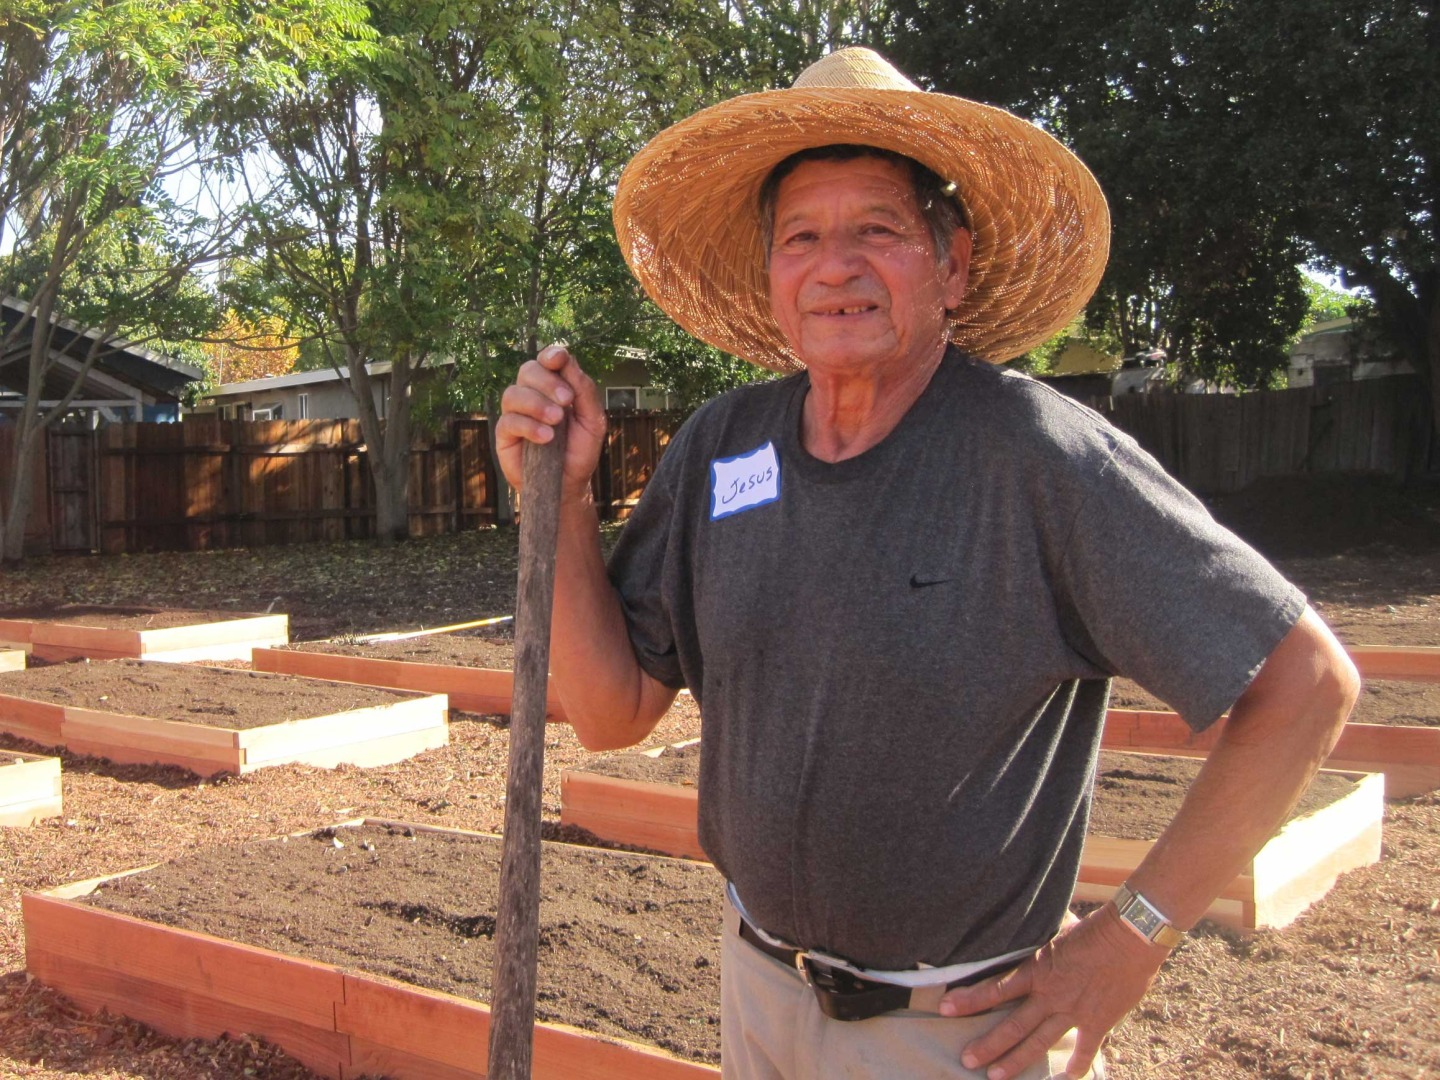 esus Becerra helps build Belle Haven's first community garden on Nov. 8, 2014. The garden opened later in the month, and about 25 families gained access to raised beds and gardening classes on site. (Farida Jhabvala Romero/Peninsula Press)